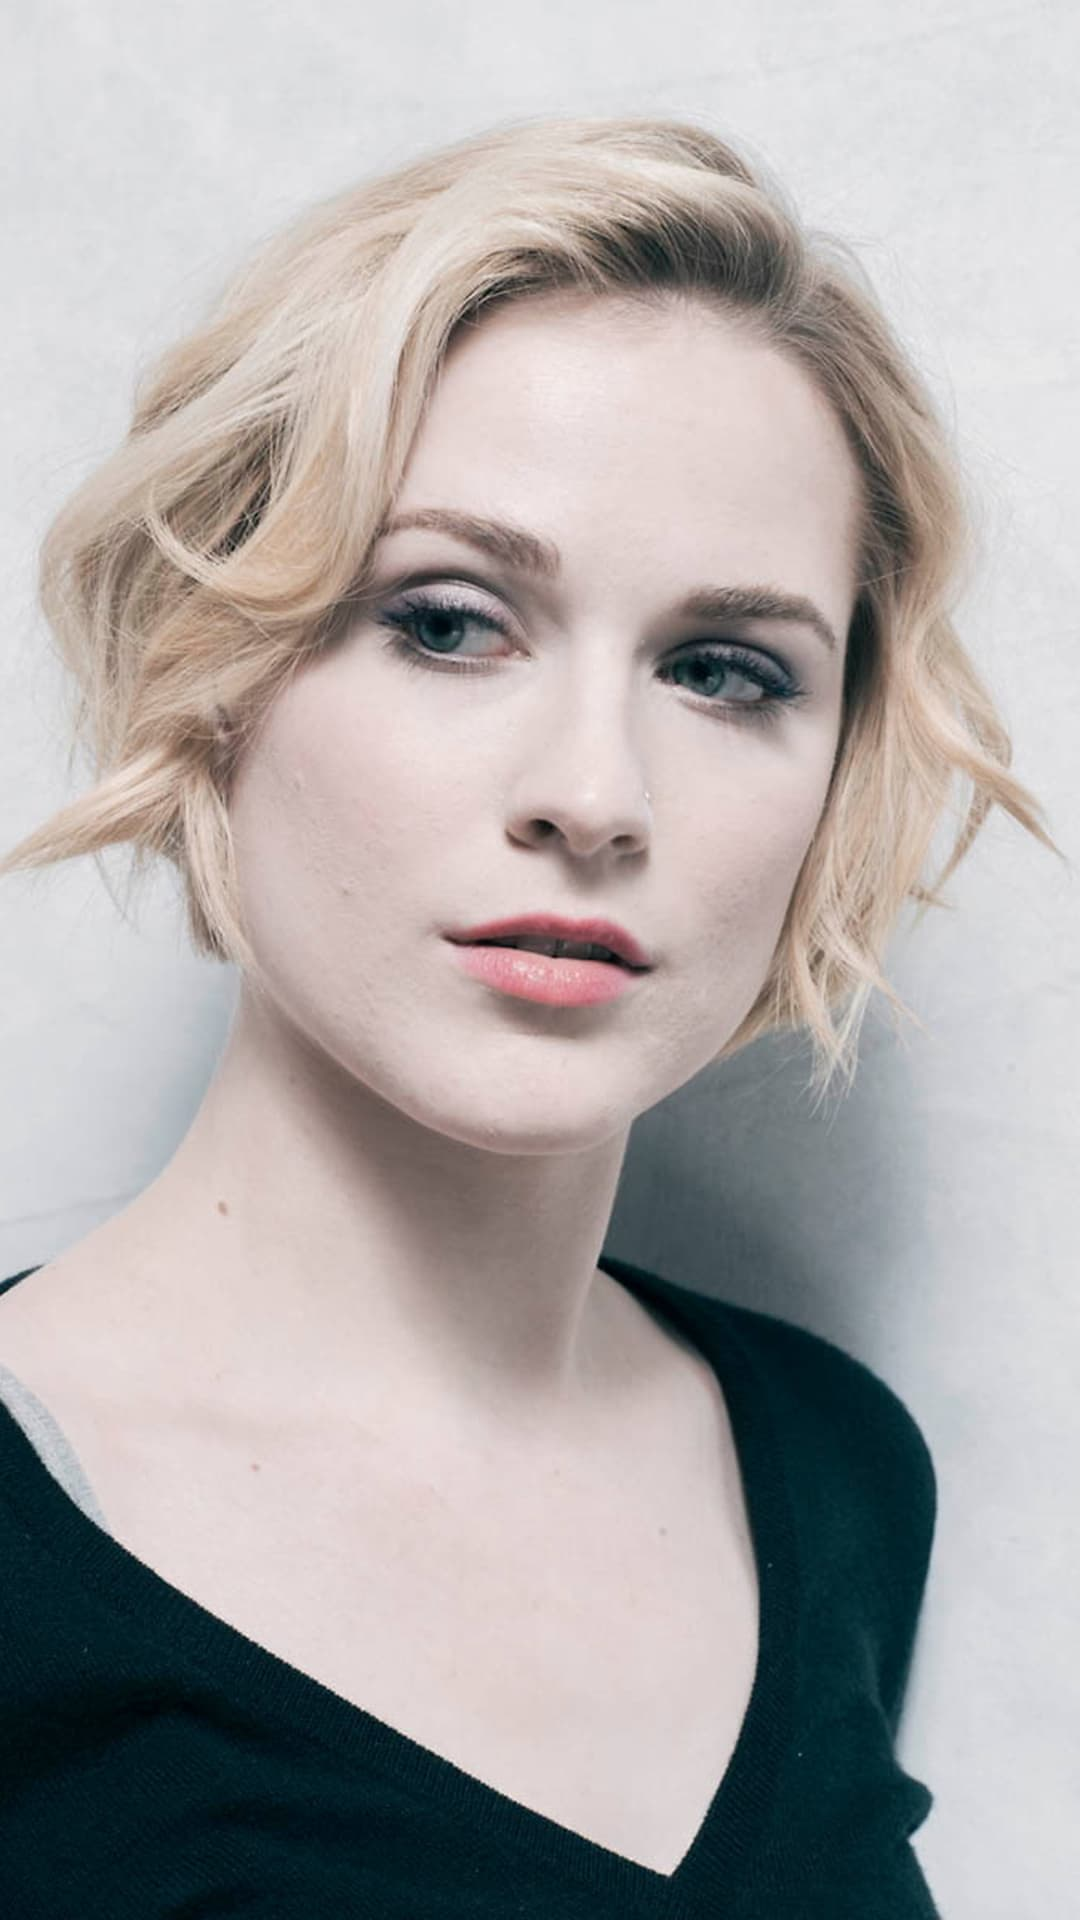 Evan Rachel Wood wallpapers HD High Quality Resolution ... Evan Rachel Wood